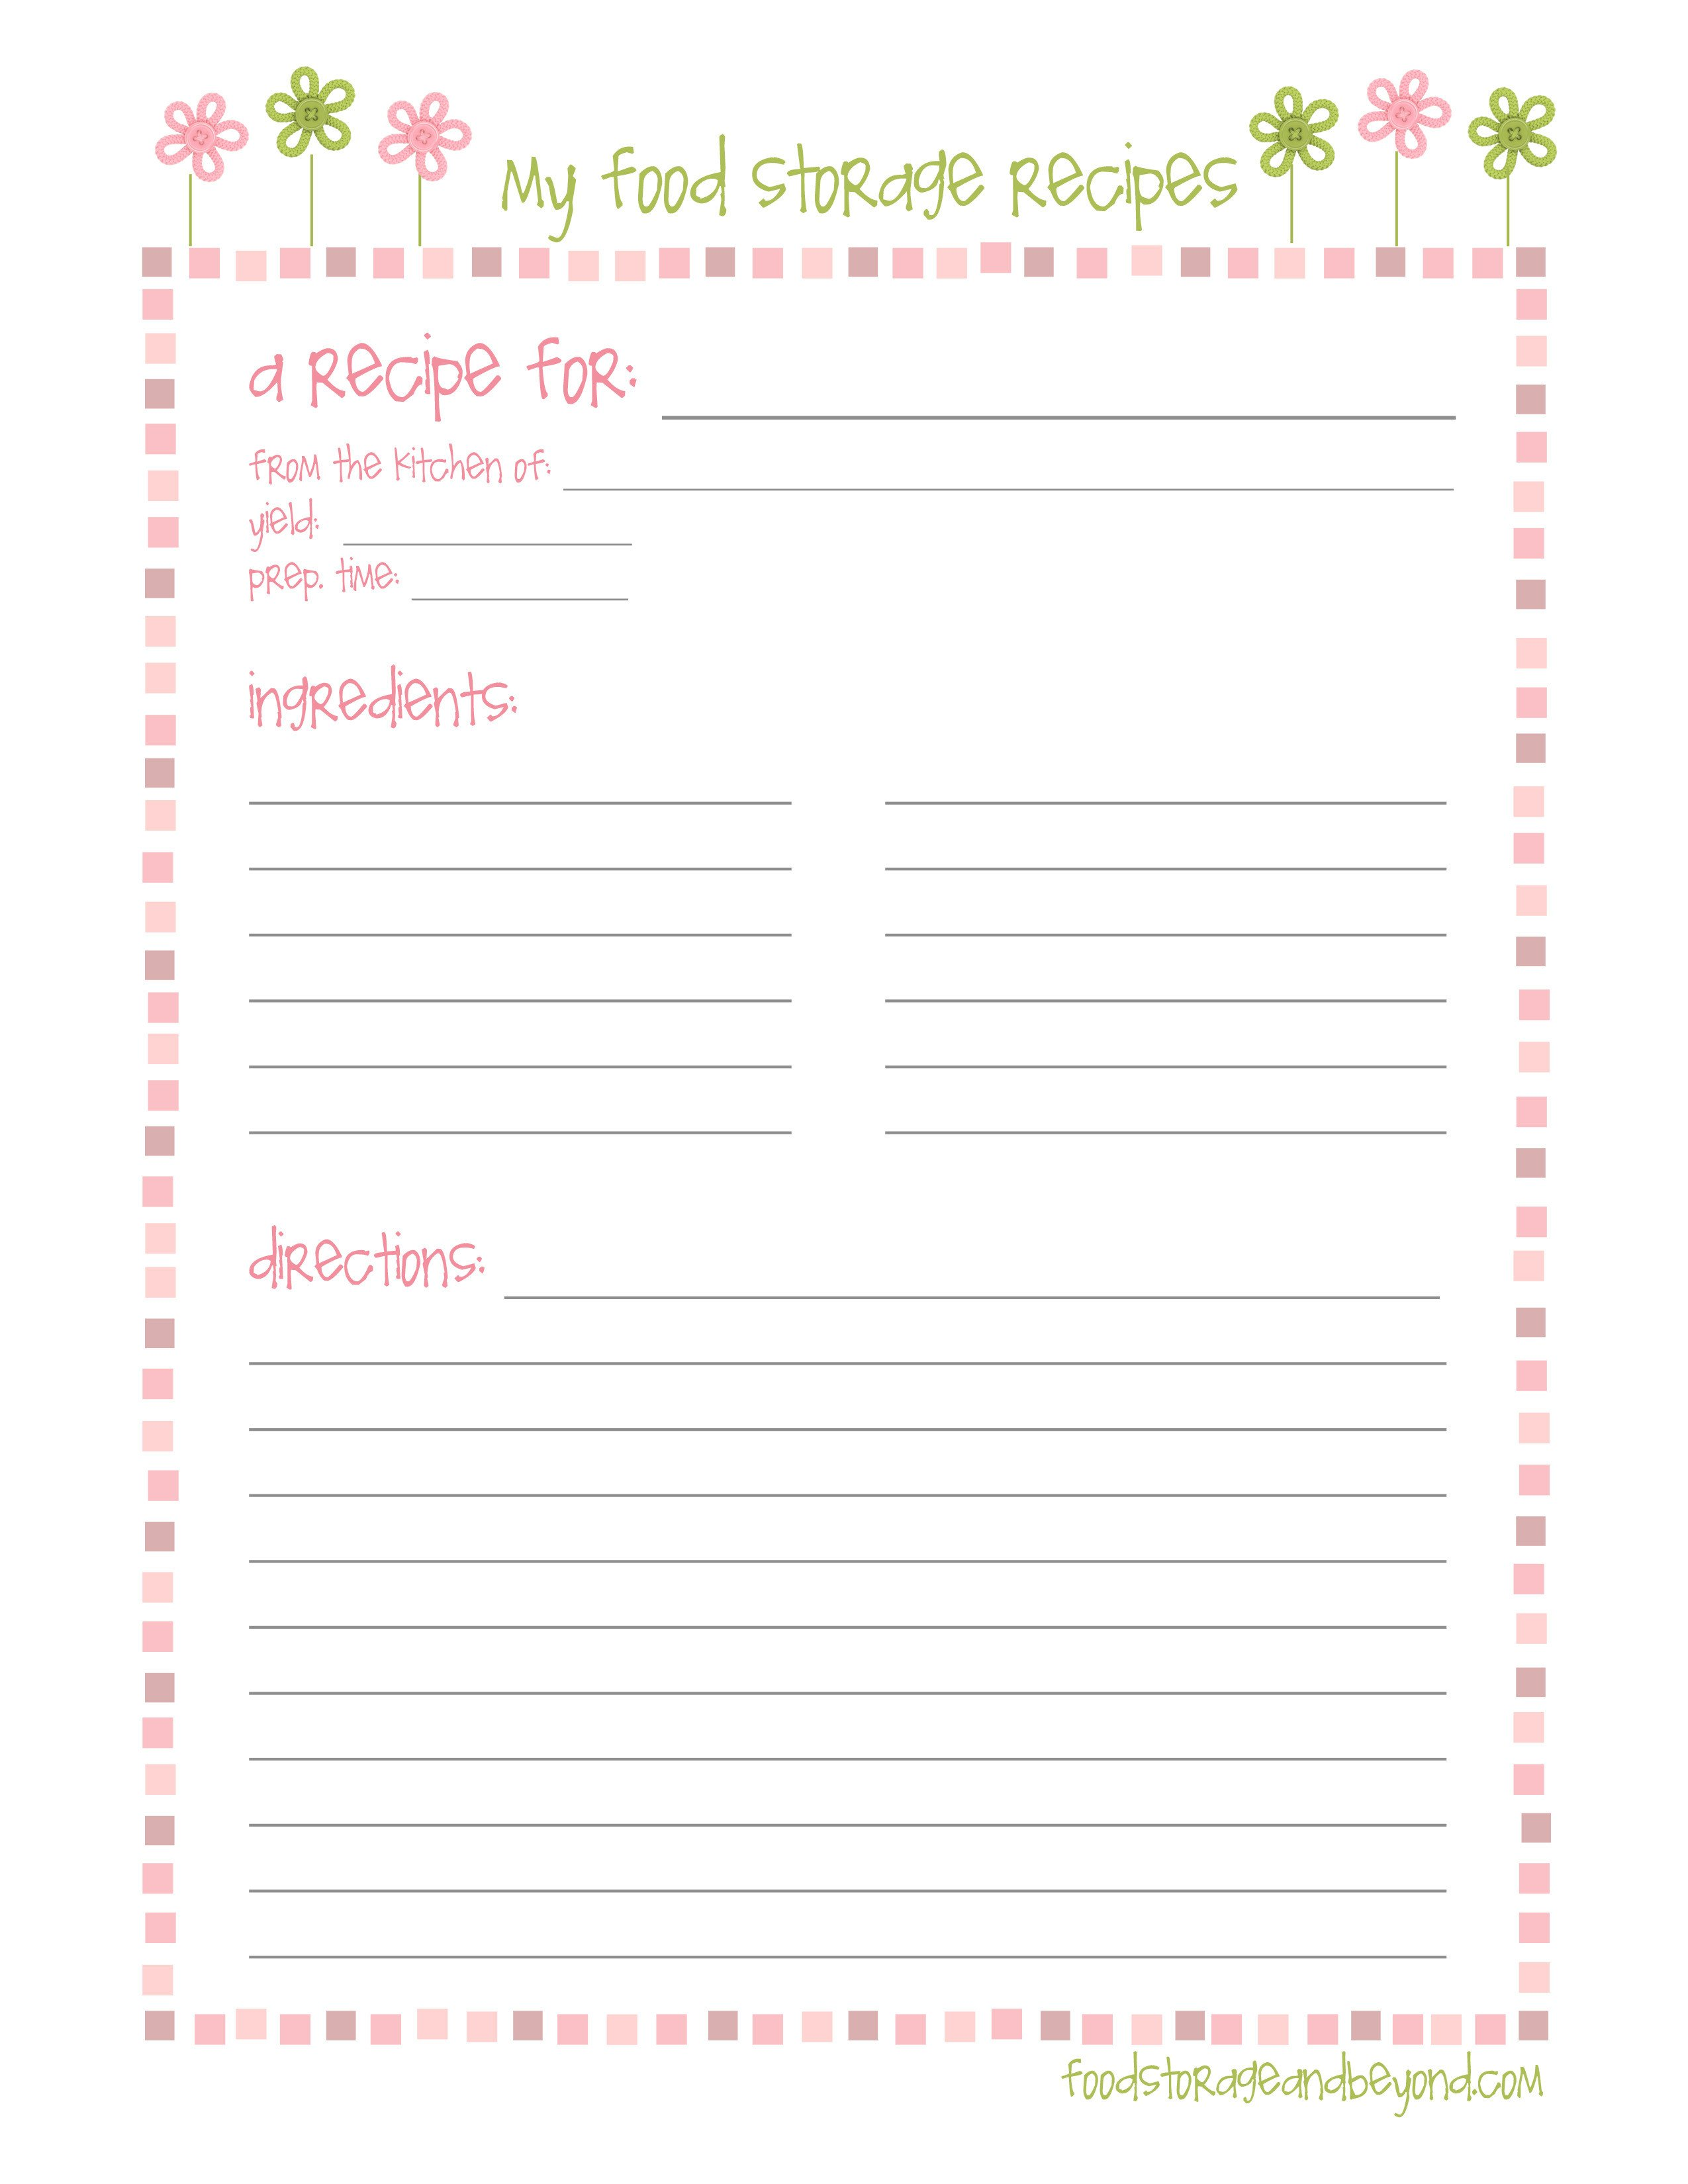 Full Page Recipe Template Editable Recipe Cards – Food Storage and Beyond